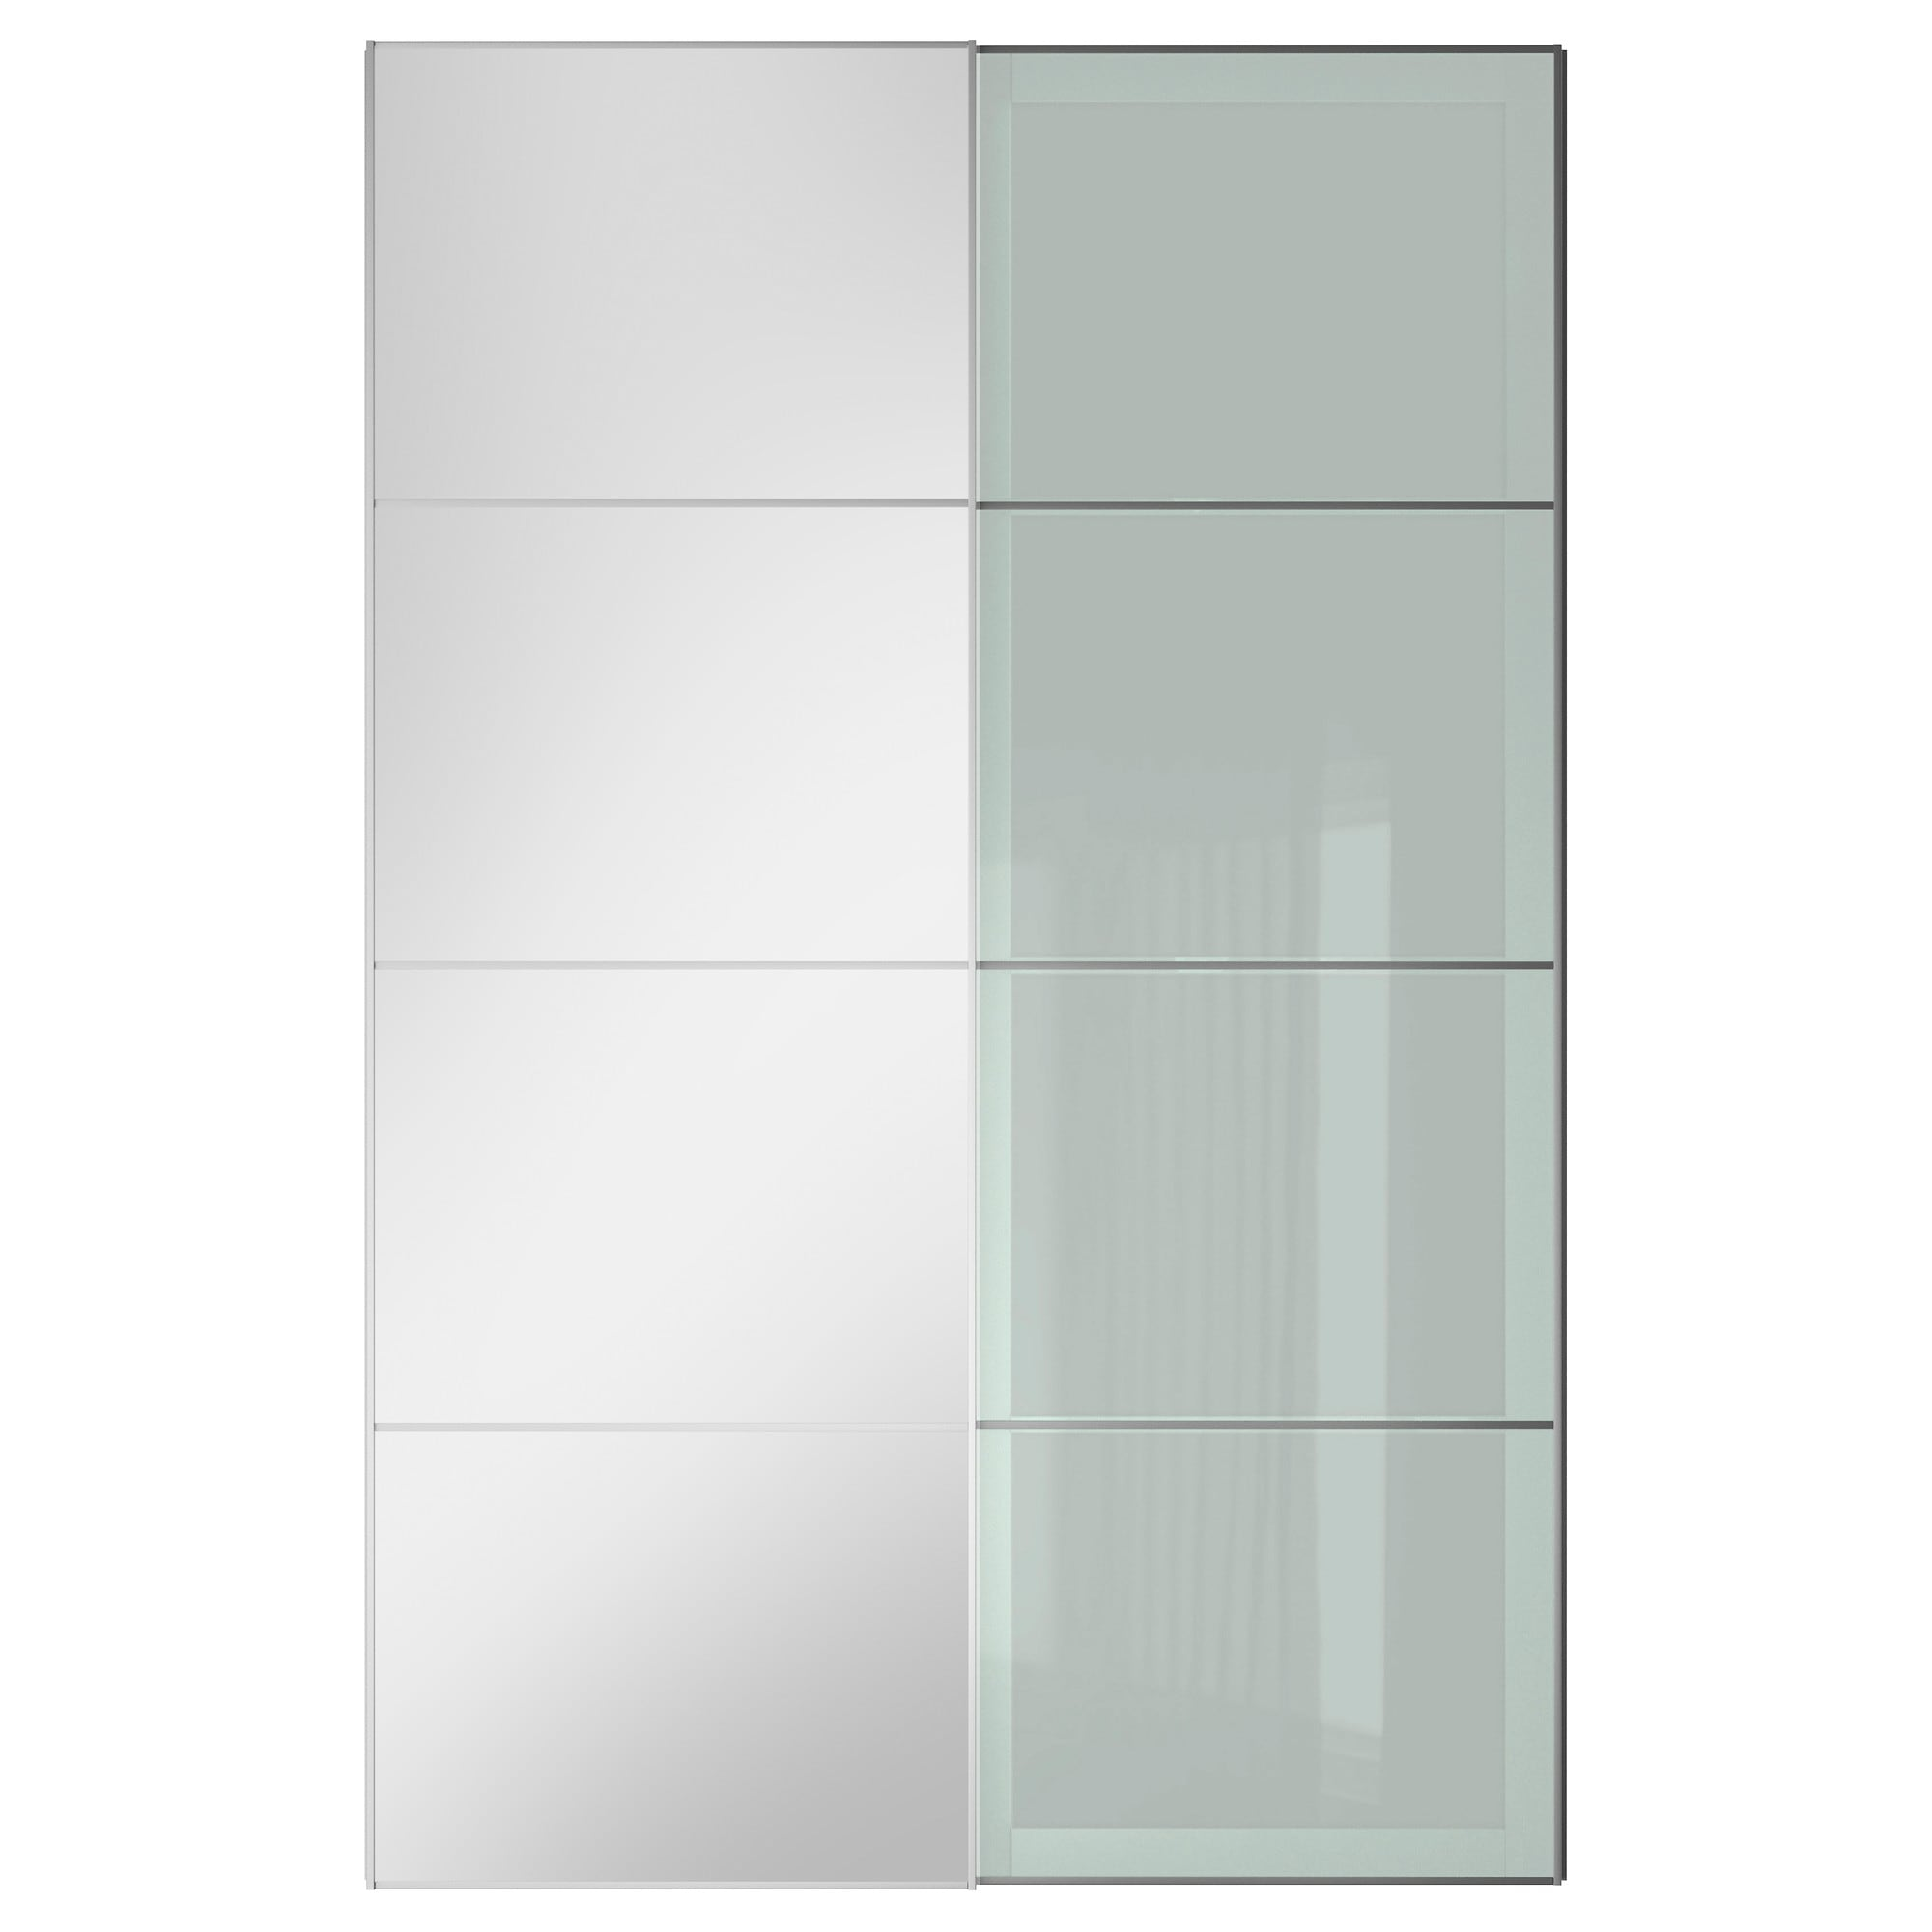 auli sekken pair of sliding doors mirror glass frosted glass width 78